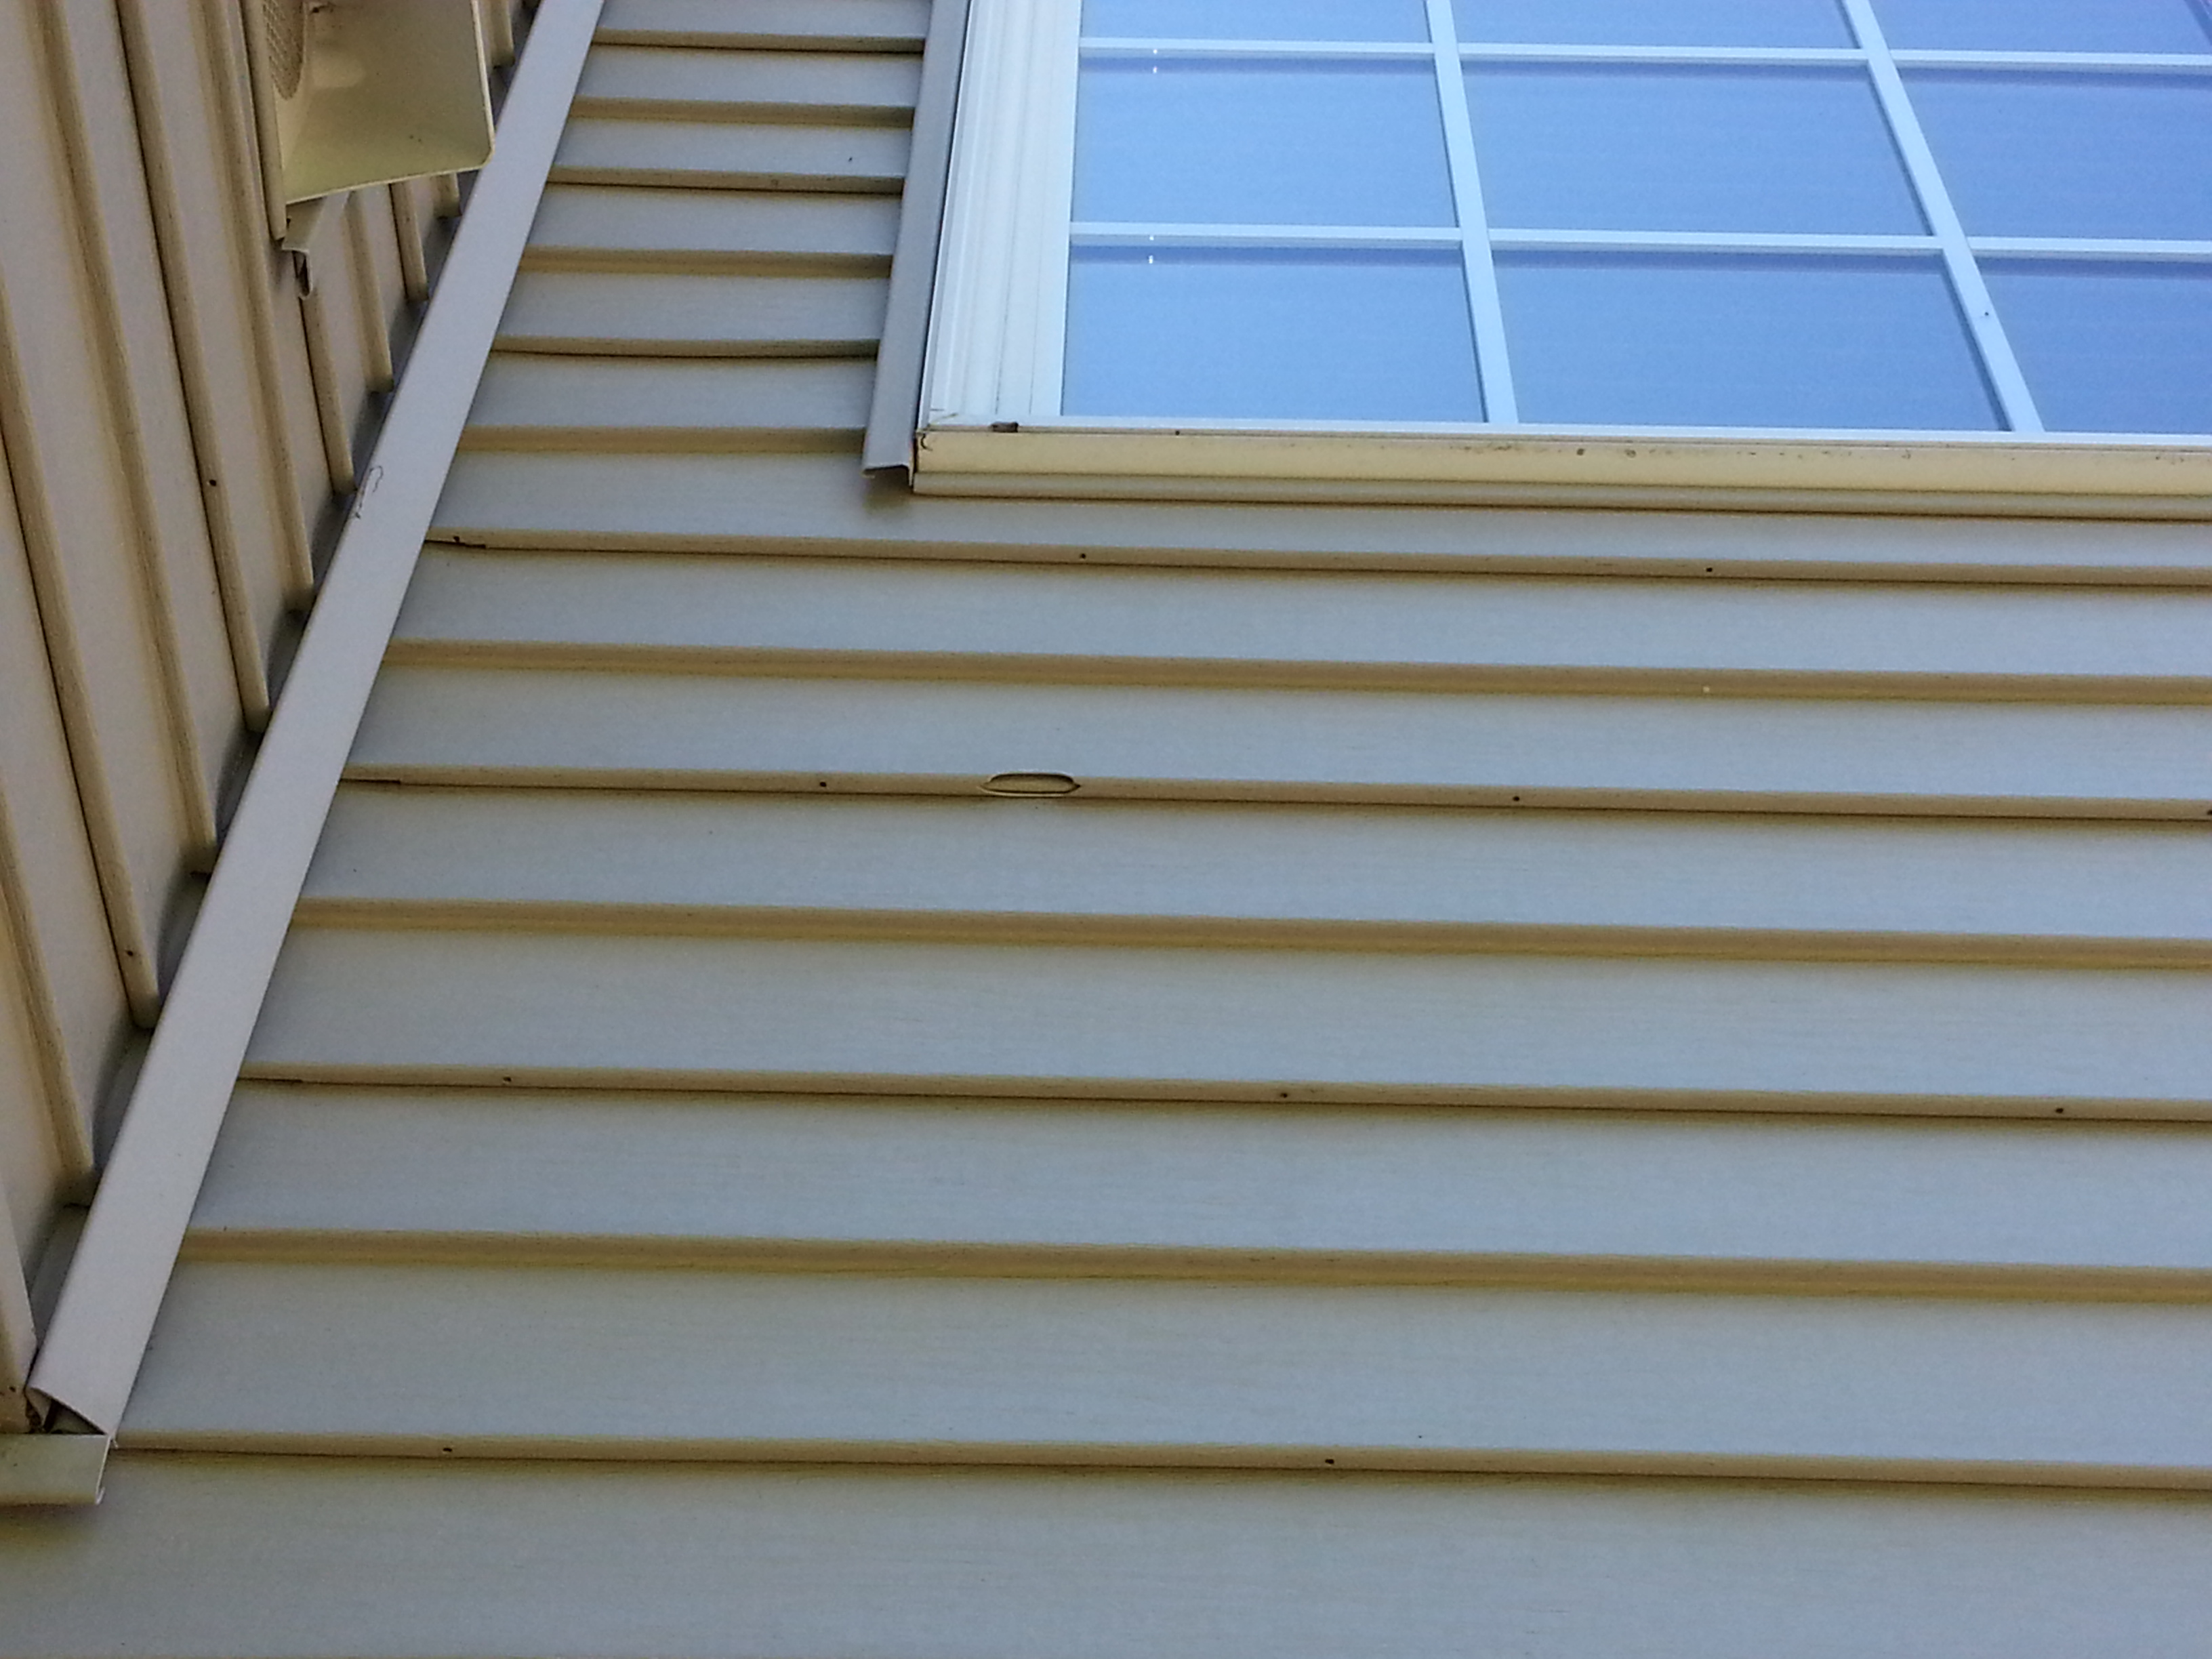 Hail damage repair roofing siding repair in mchenry county for Hail damage vinyl siding